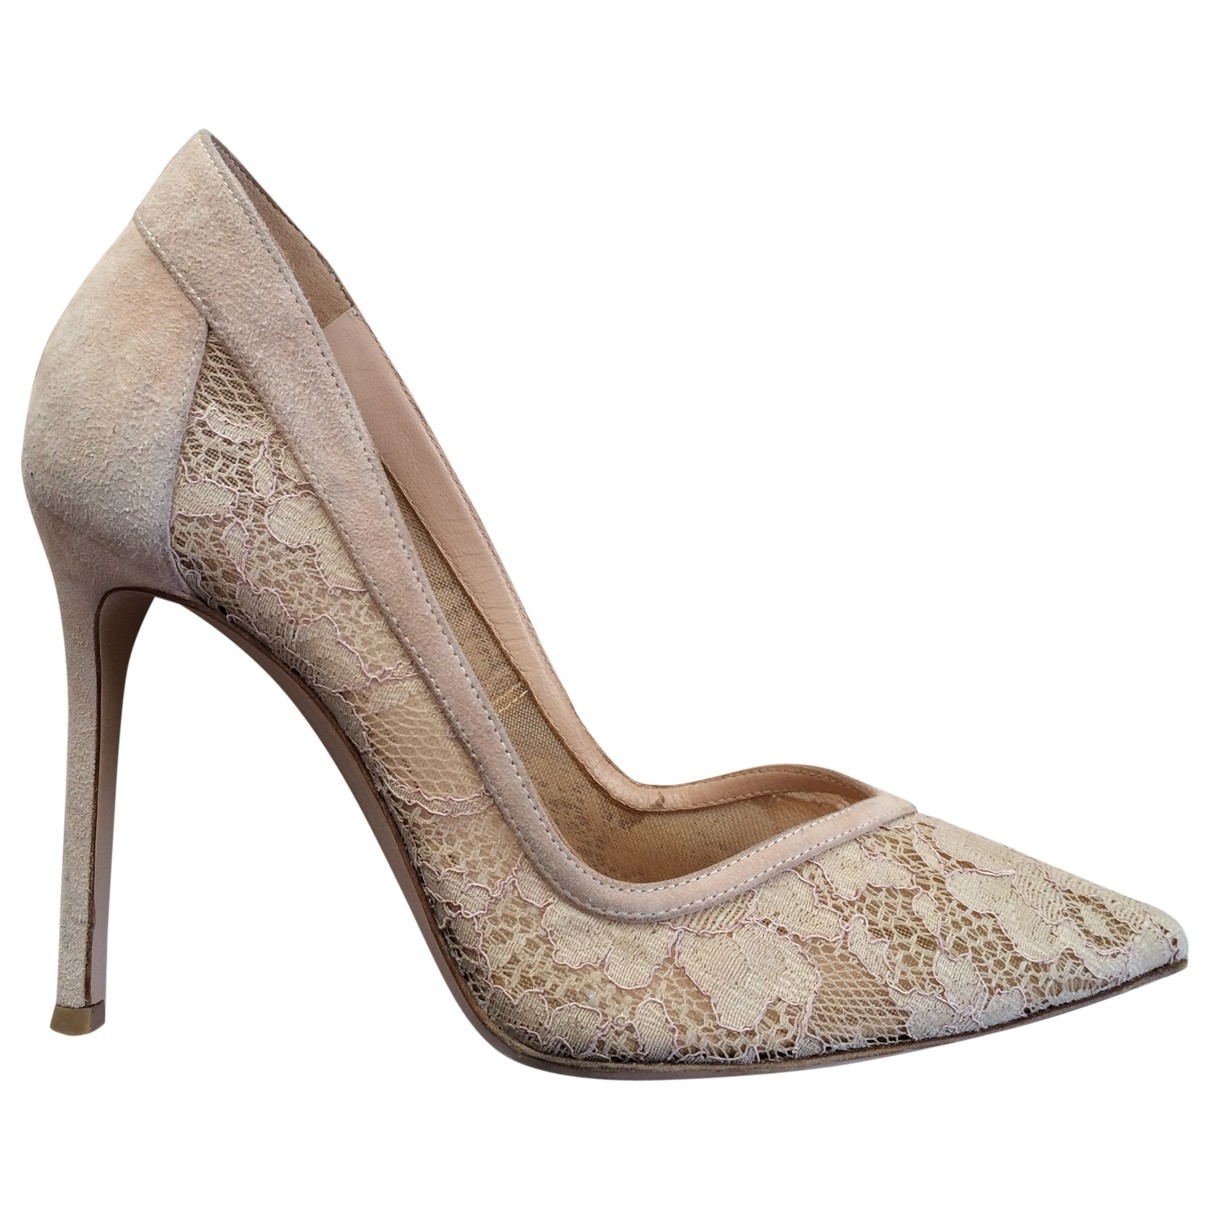 Gianvito Rossi \N Pumps in  Ecru Leinen